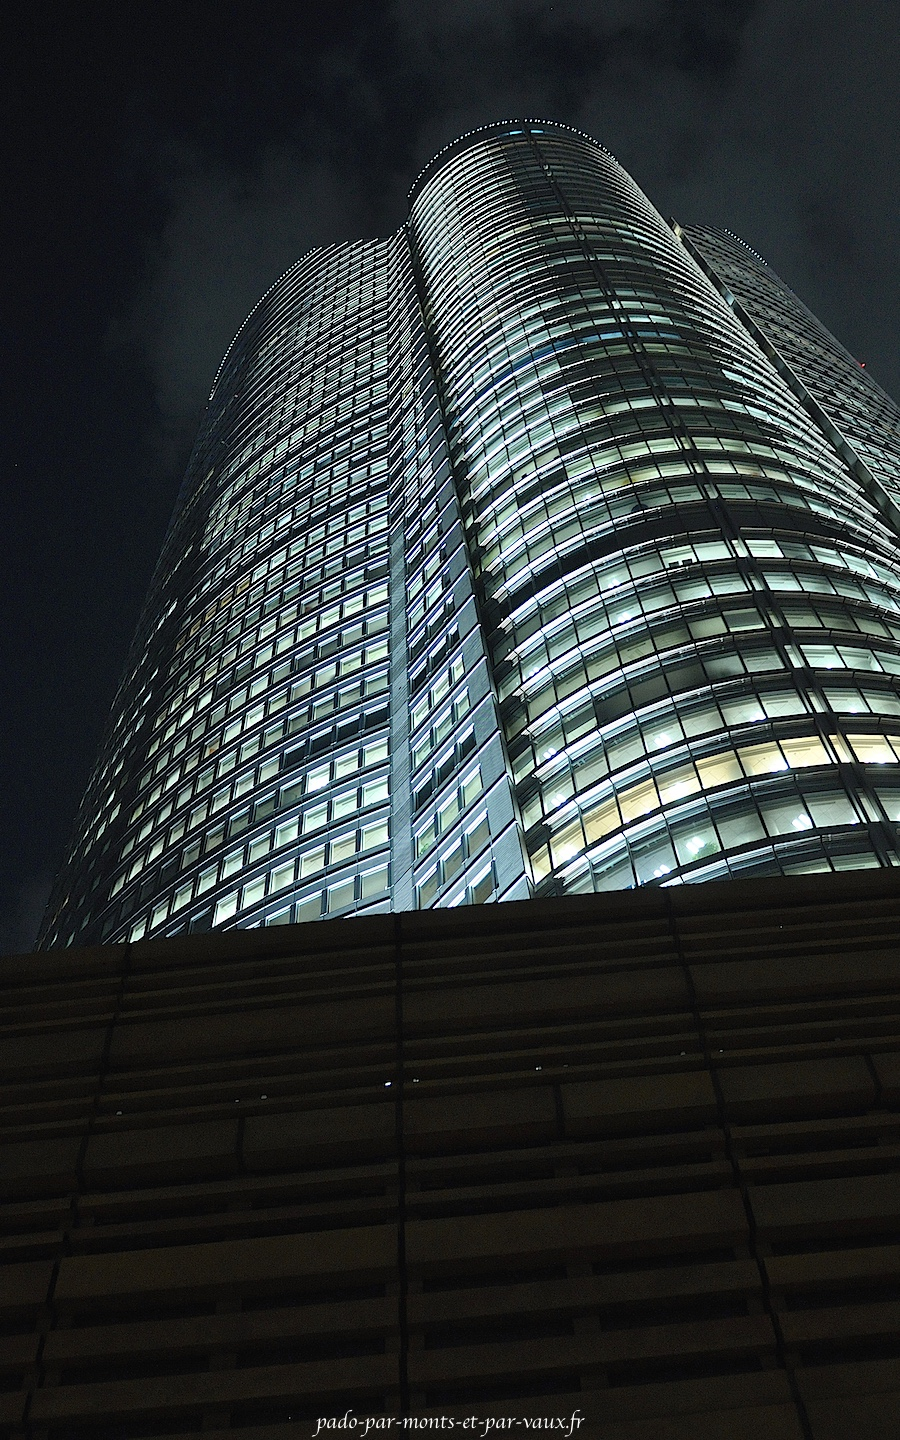 Roppongi - Mori tower